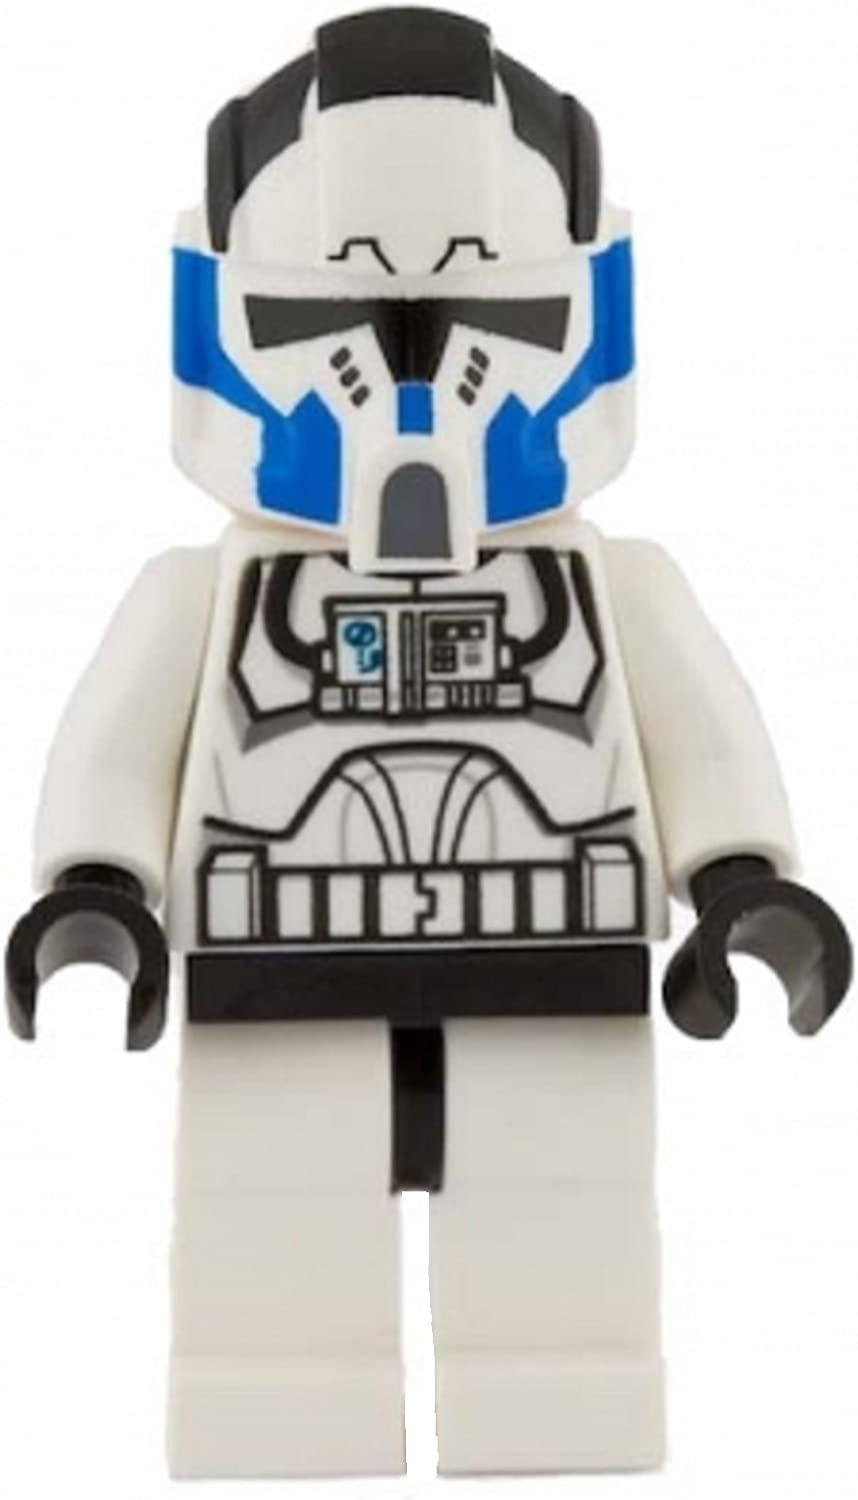 LEGO Star Wars 501st Clone Pilot - from set 75004